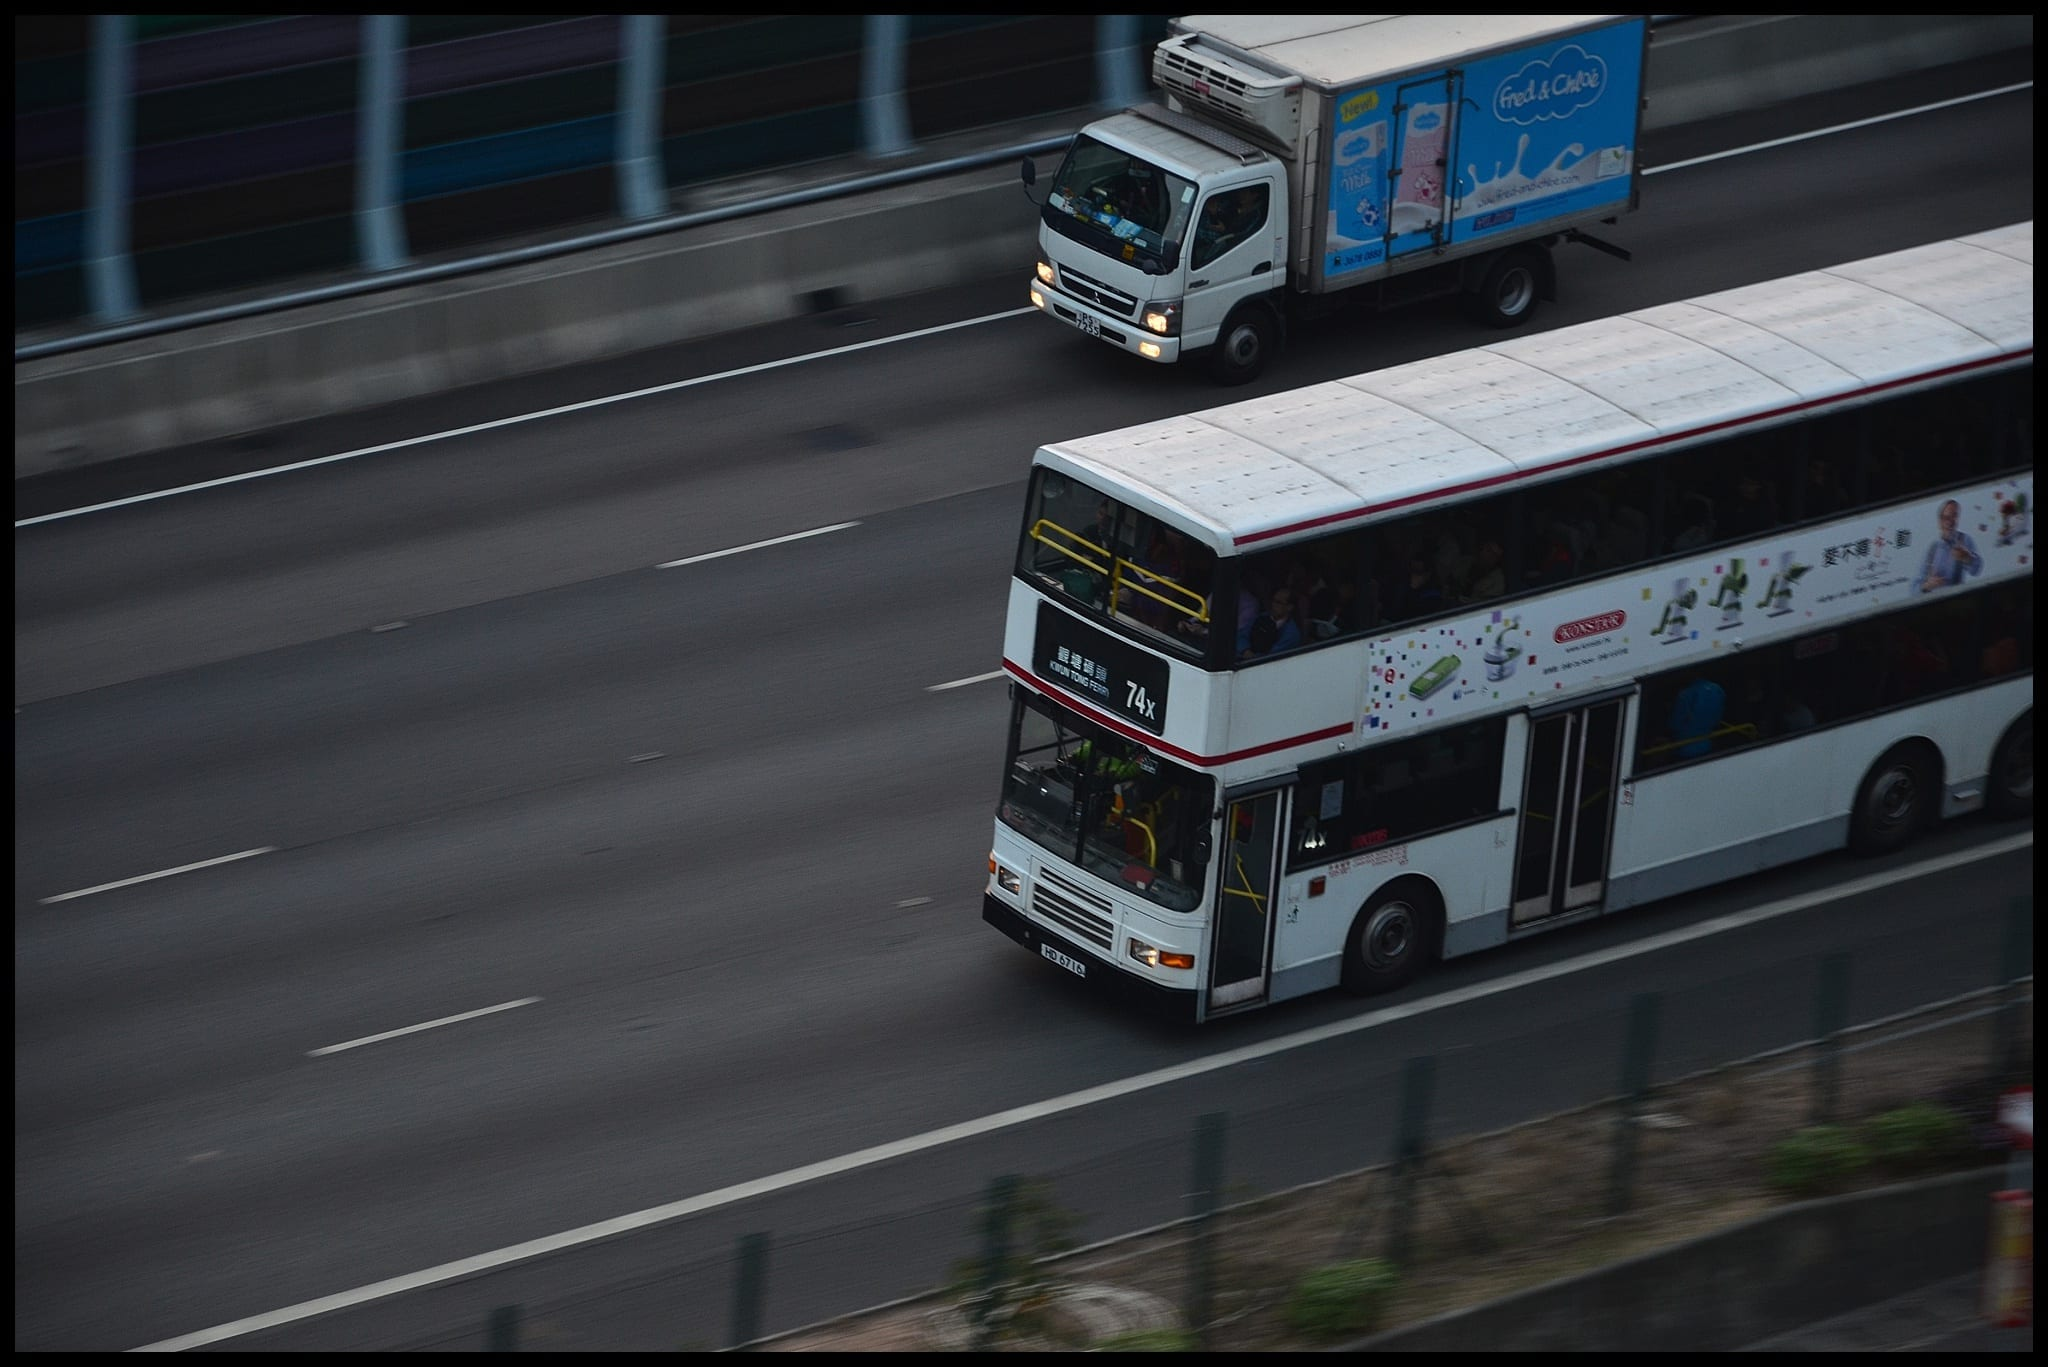 hkstp-Hong Kong Science Technology Parktolo highway_bus